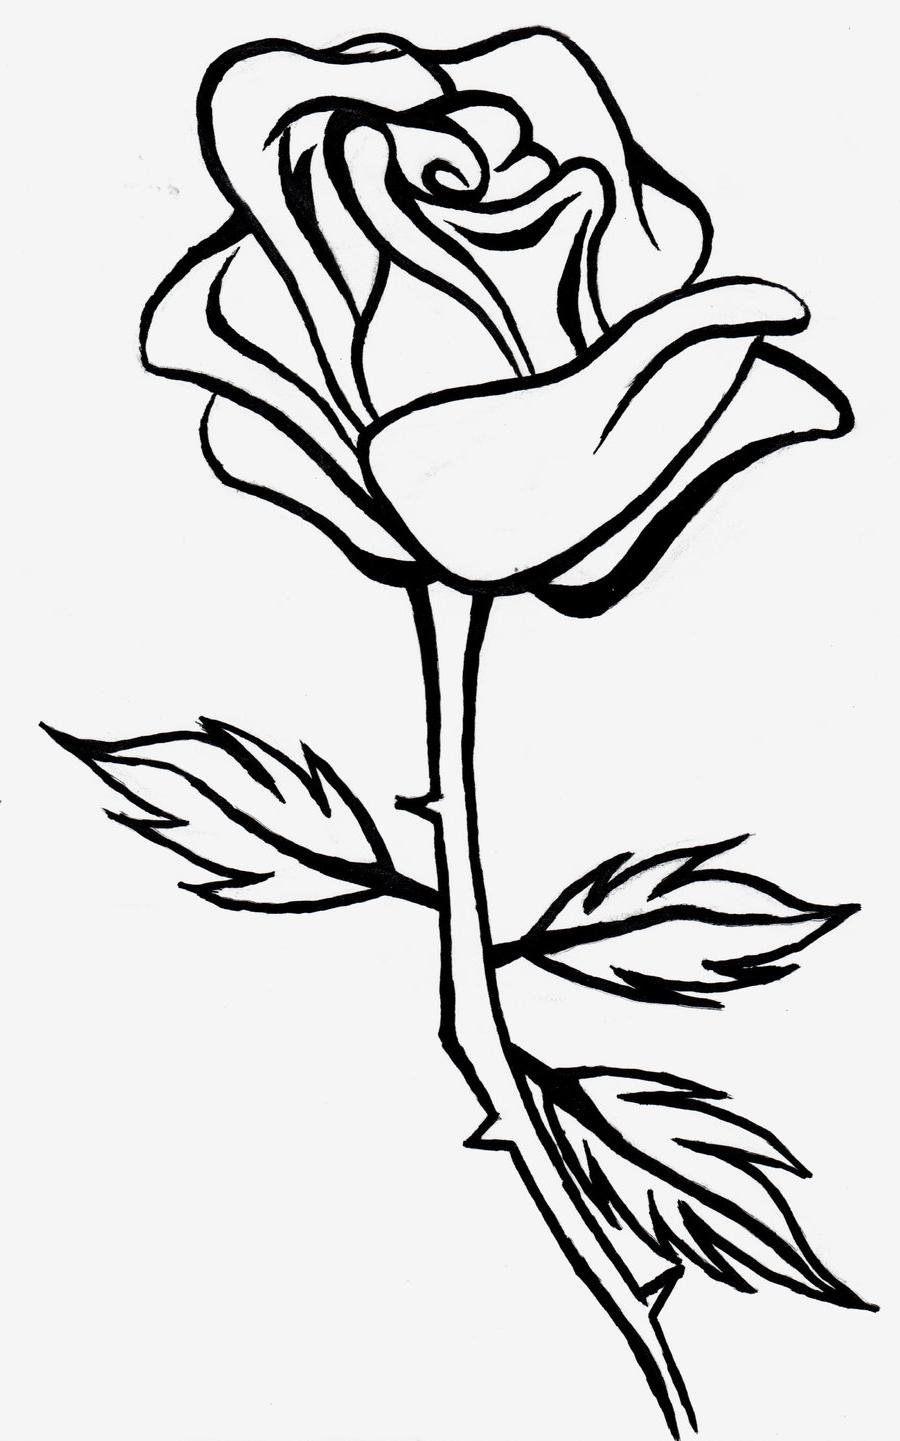 Free download clipartpost . Clipart rose black and white